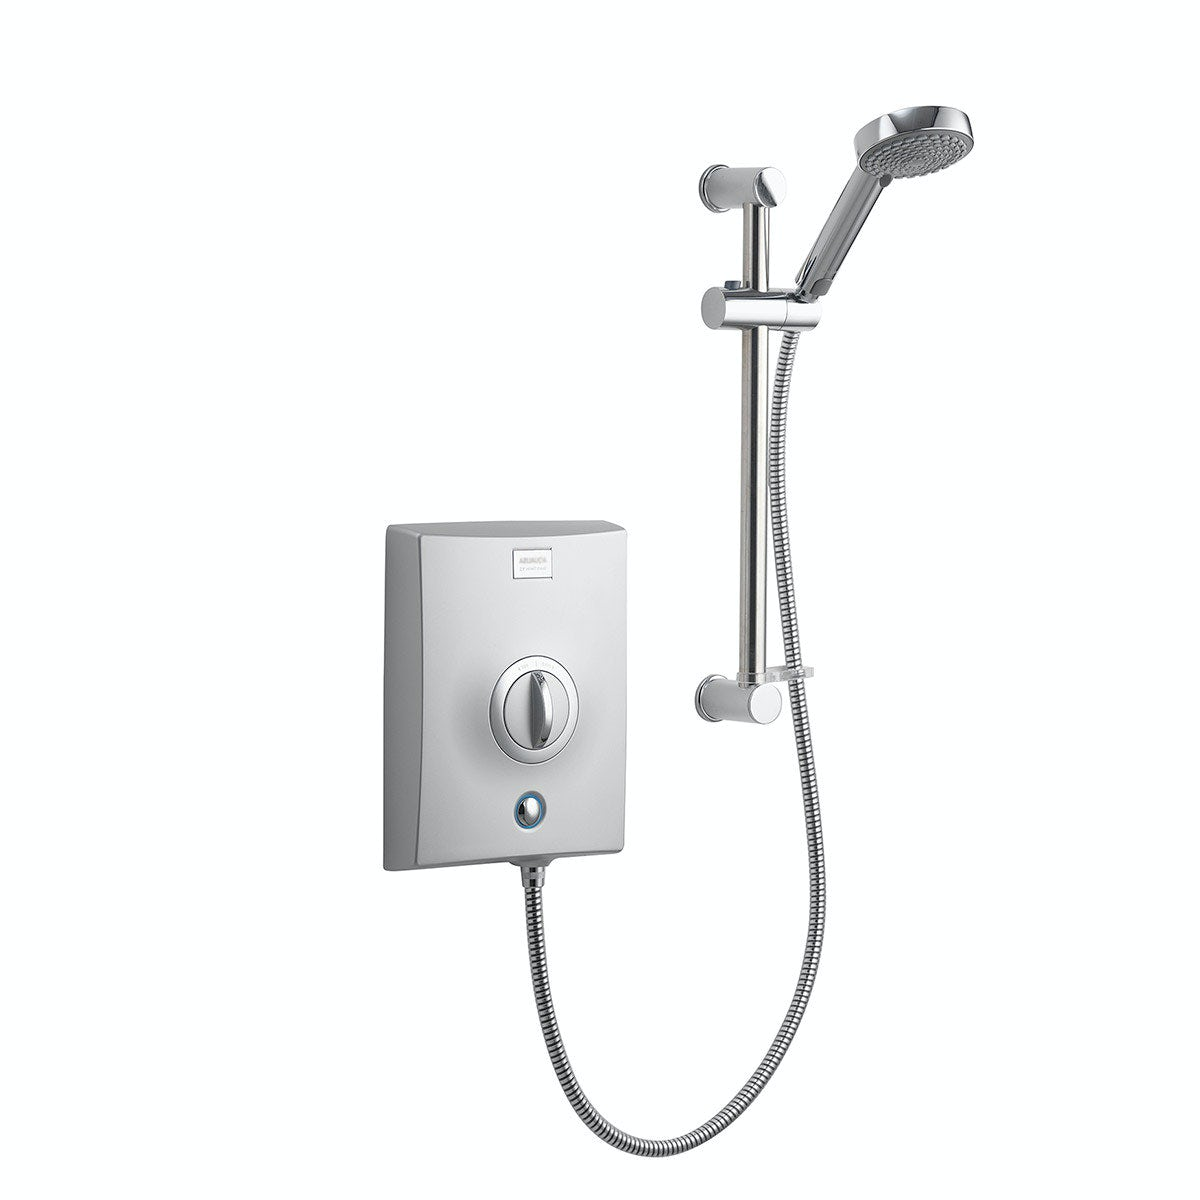 Aqualisa quartz electric shower 10.5kw